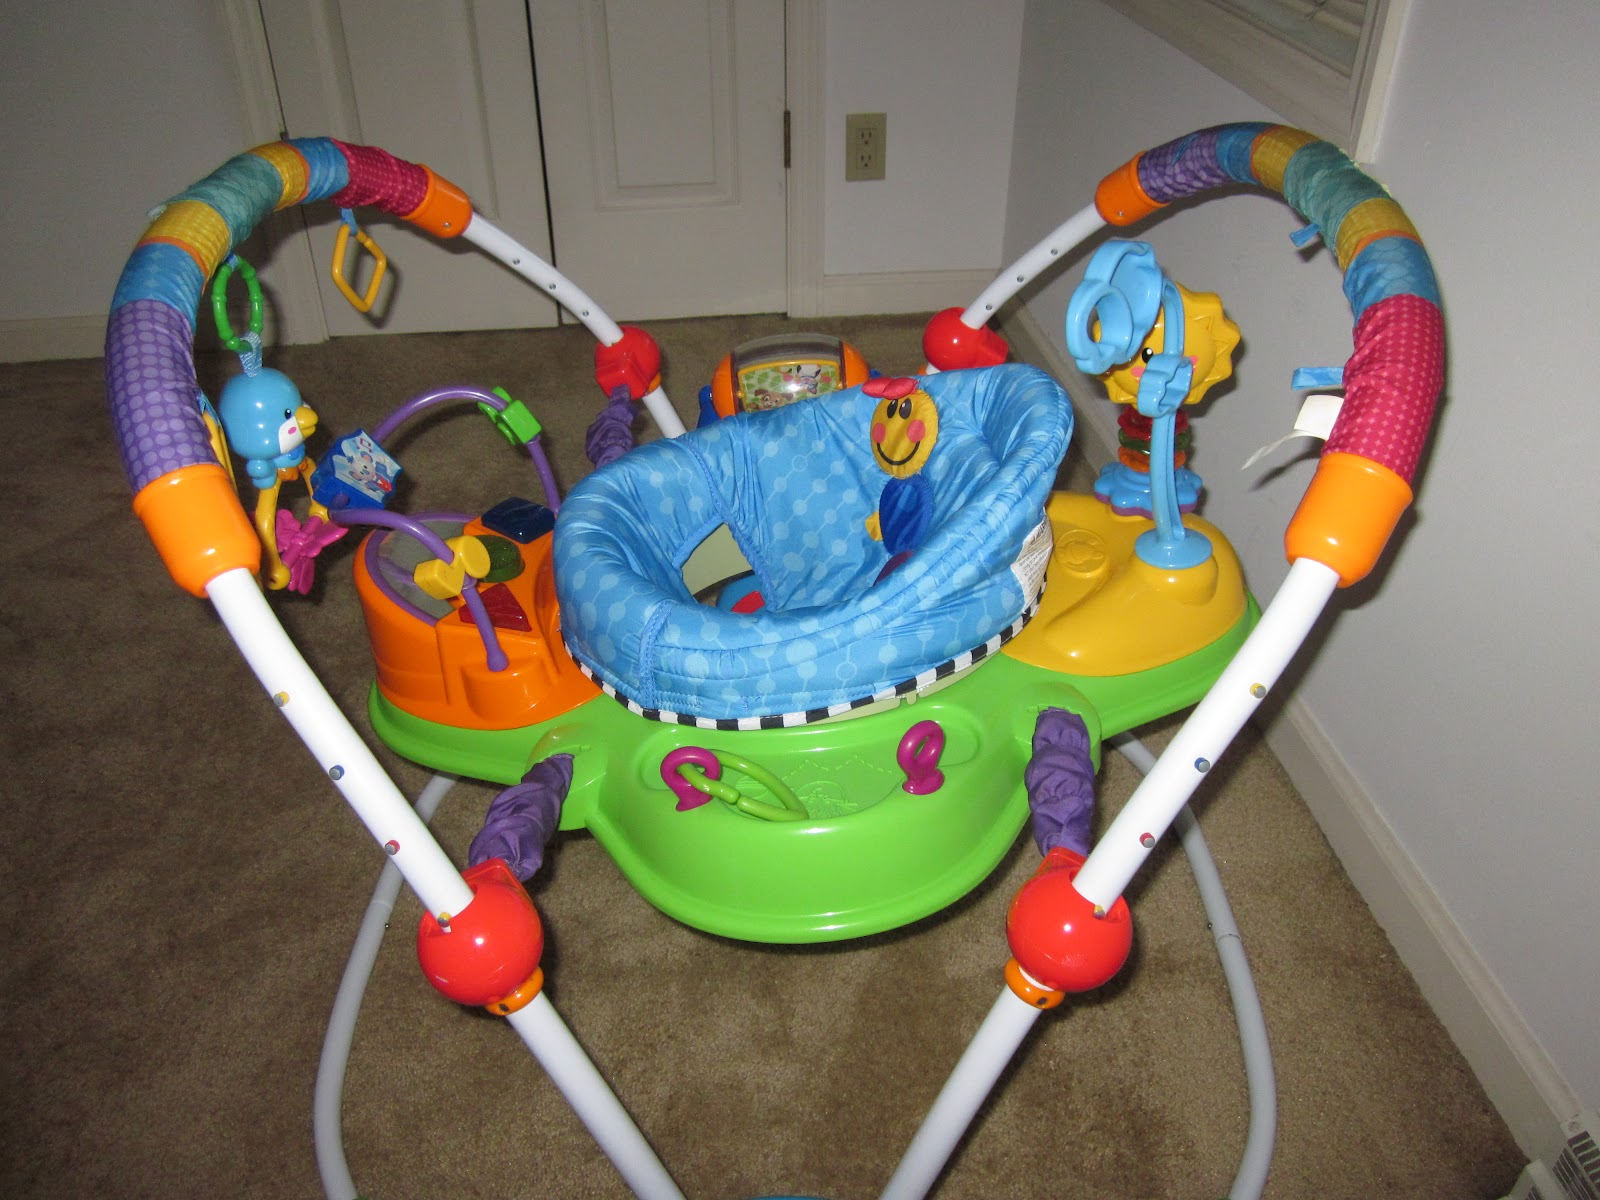 b48135566 Baby Einstein Jumper Instructions Images - form 1040 instructions